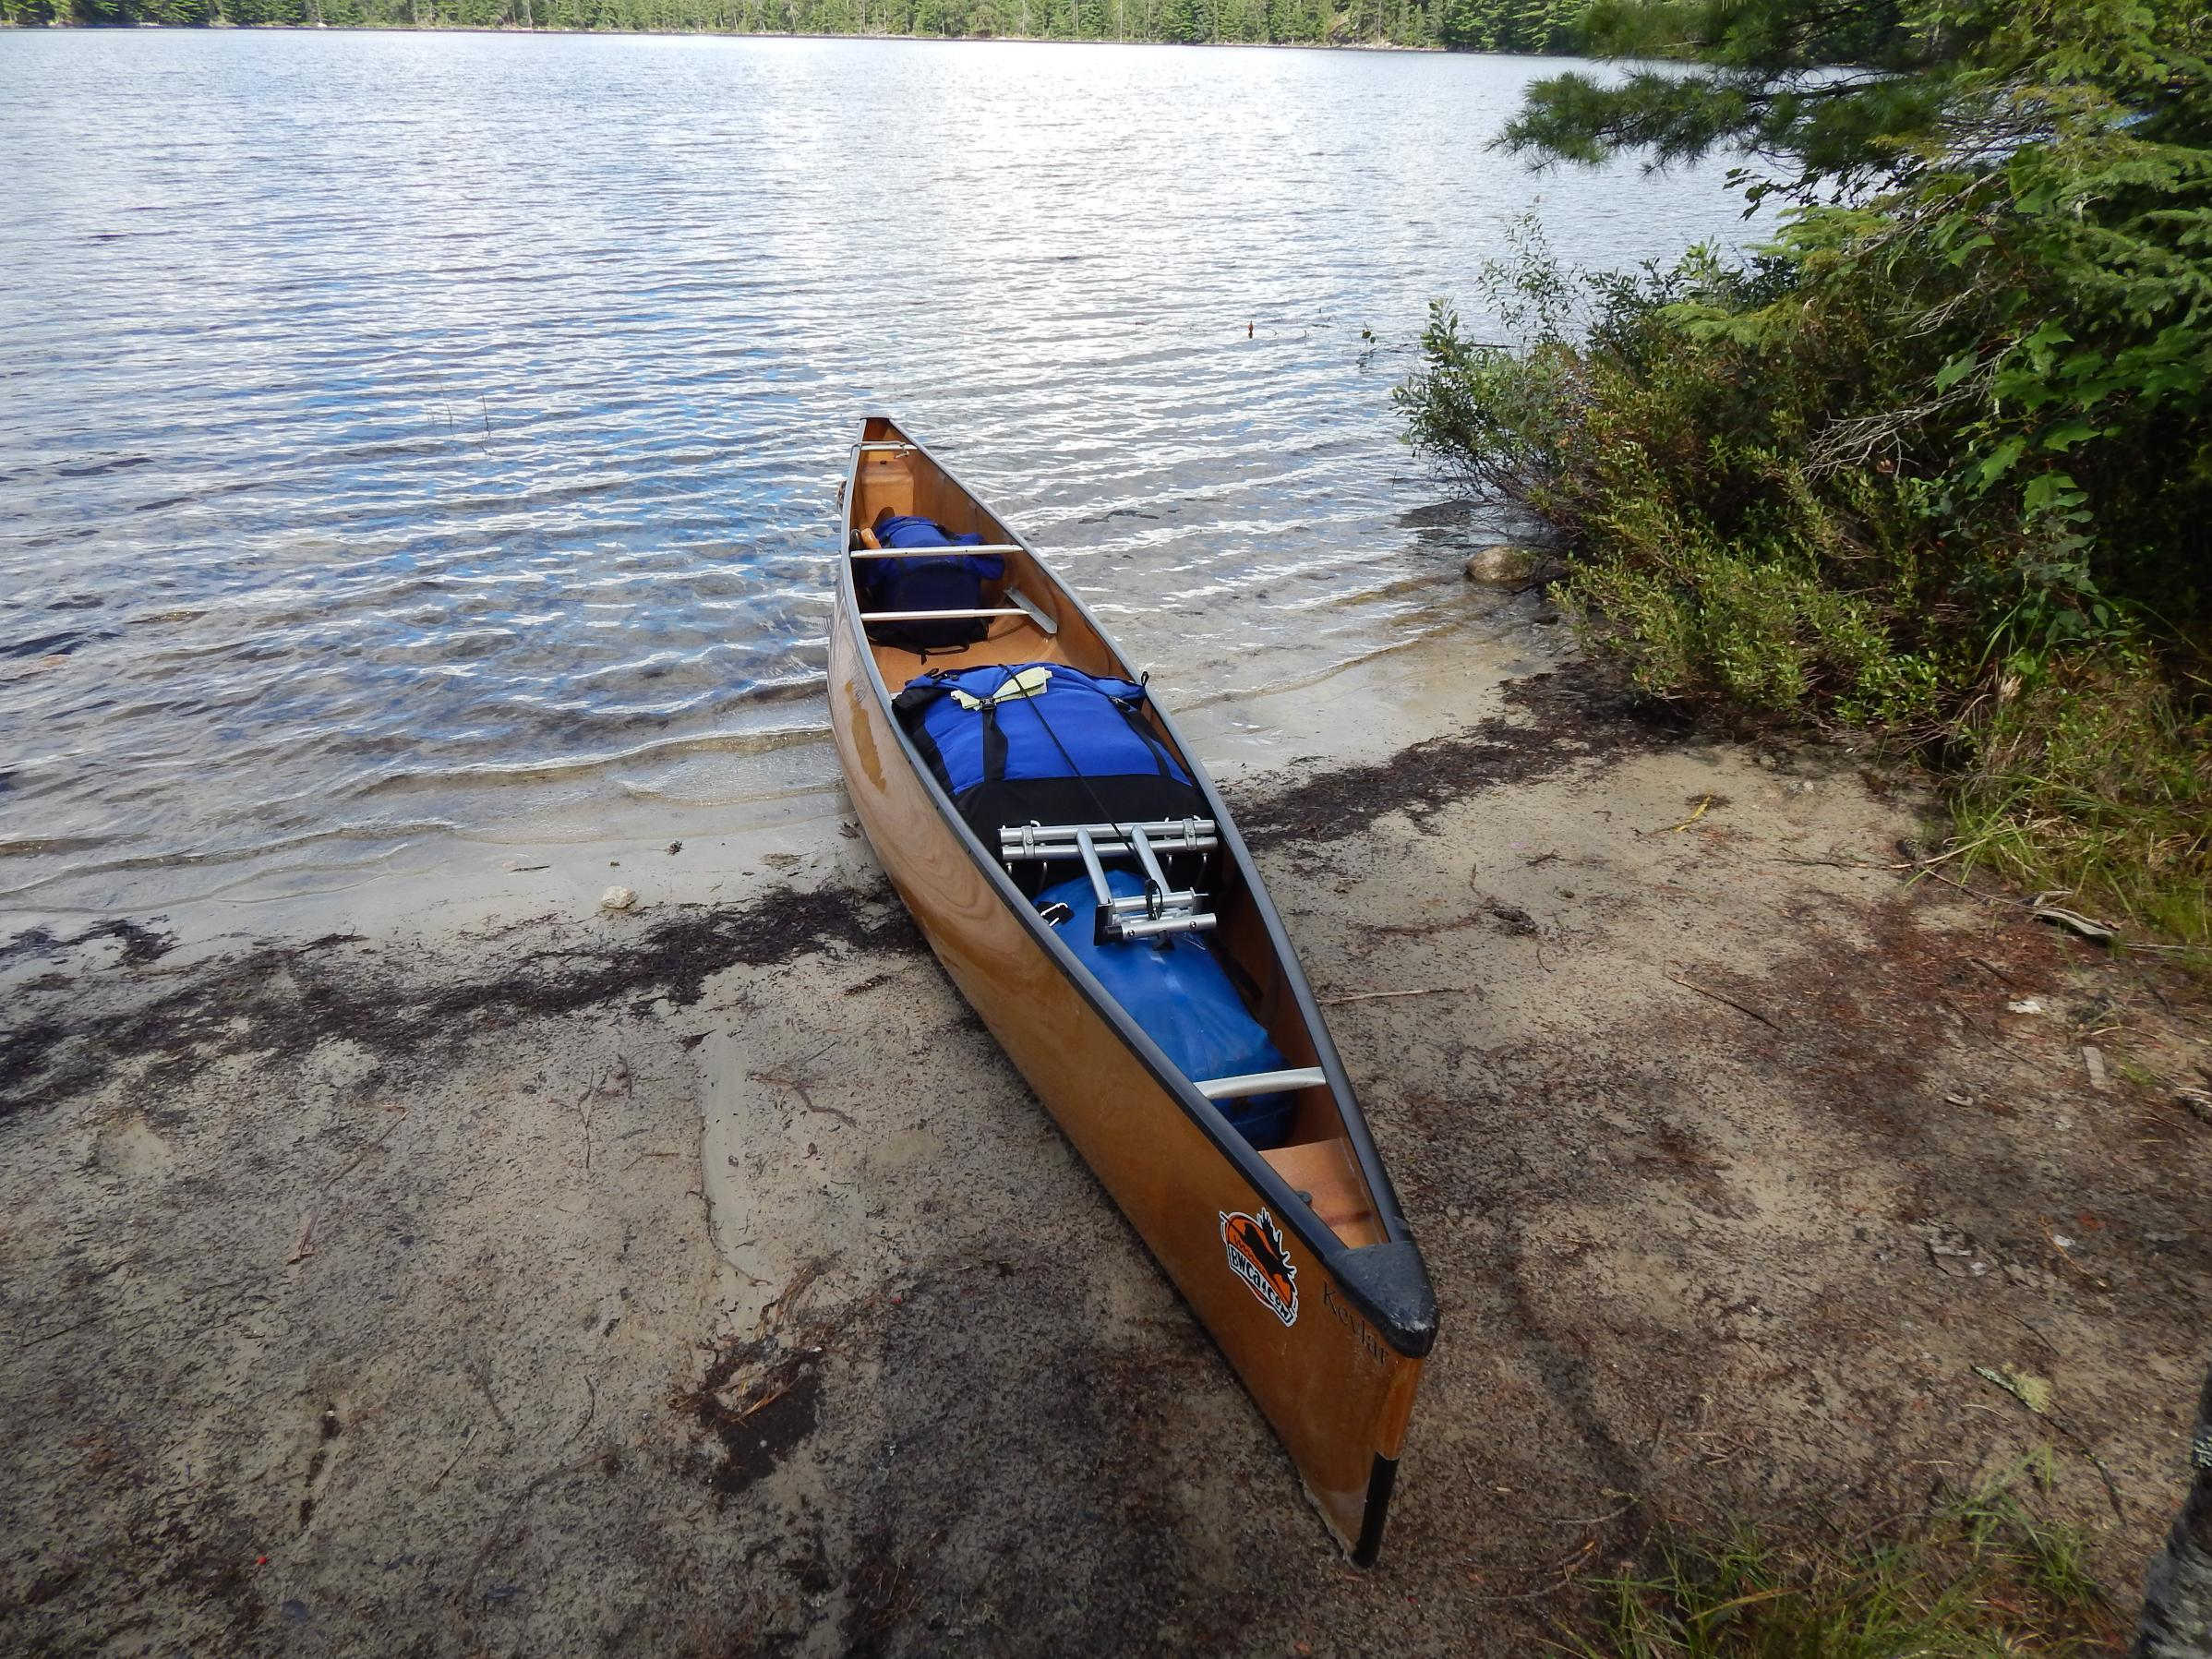 BWCA How will a Prism deal with a large load and big water